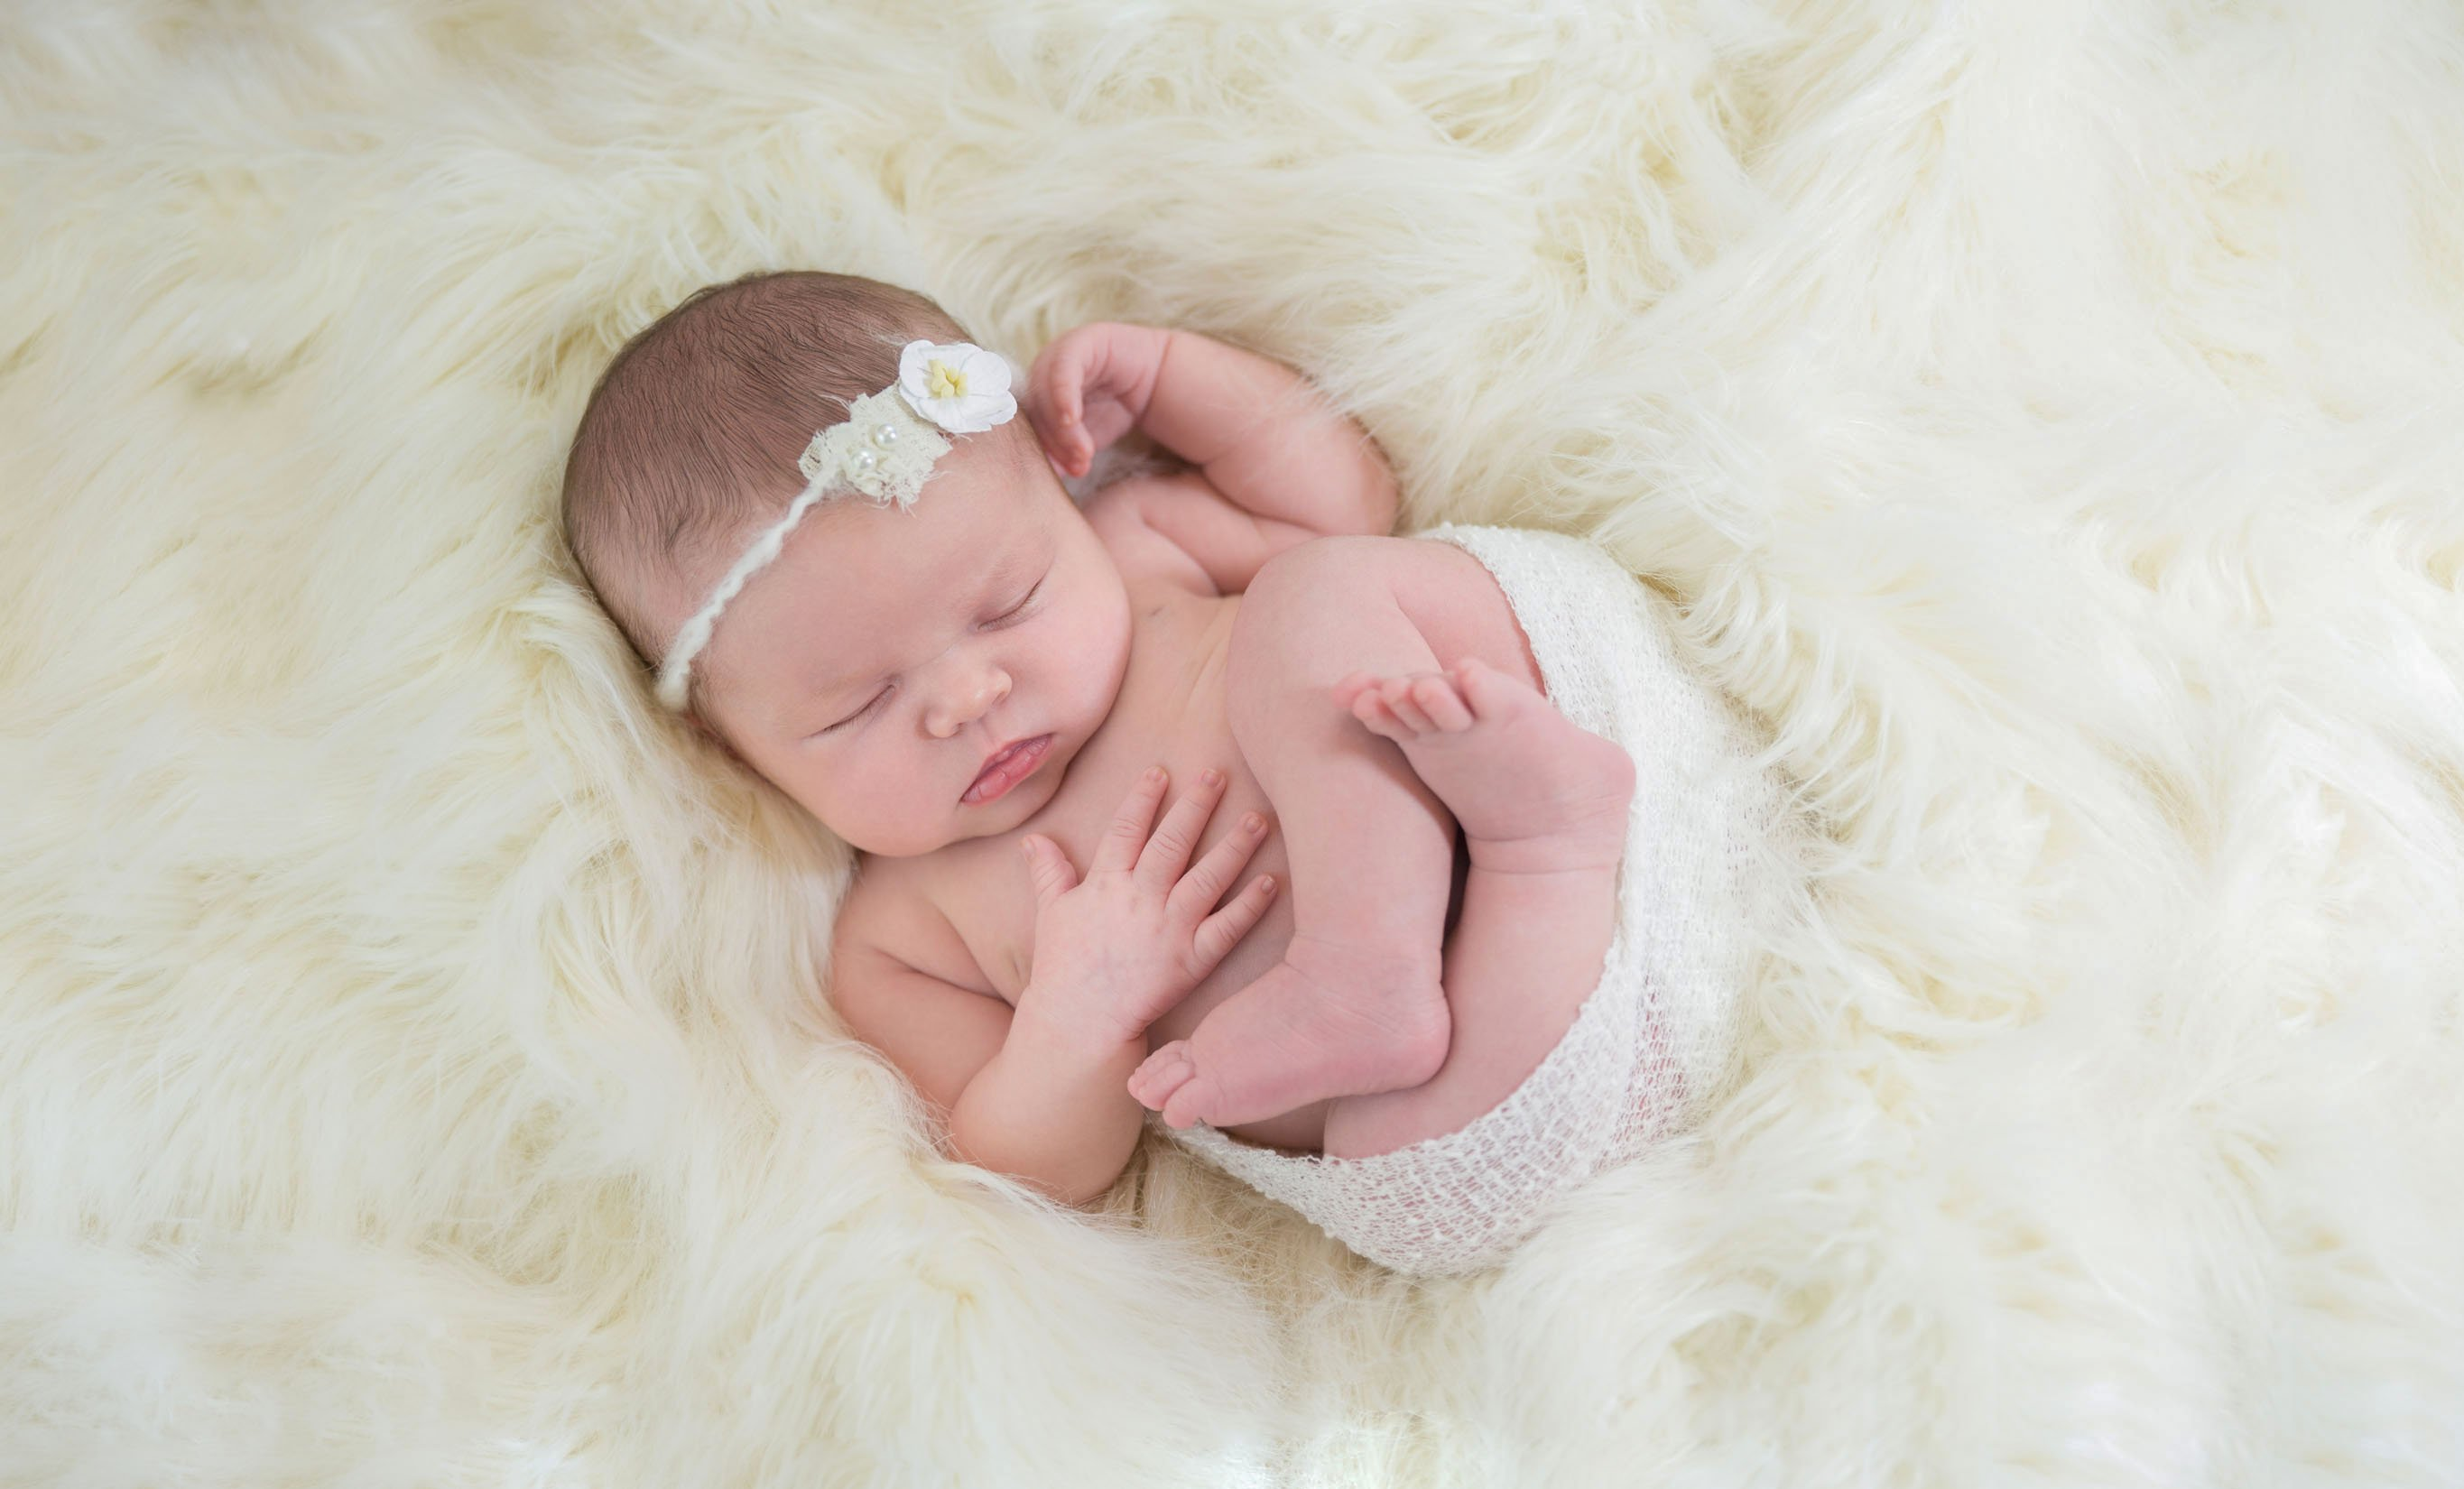 Professional newborn photography studio Truly Madly Deeply serving Melbourne, Titusville, Cocoa, Palm Bay, Brevard County, Florida's Space Coast, Orlando, Central Florida.